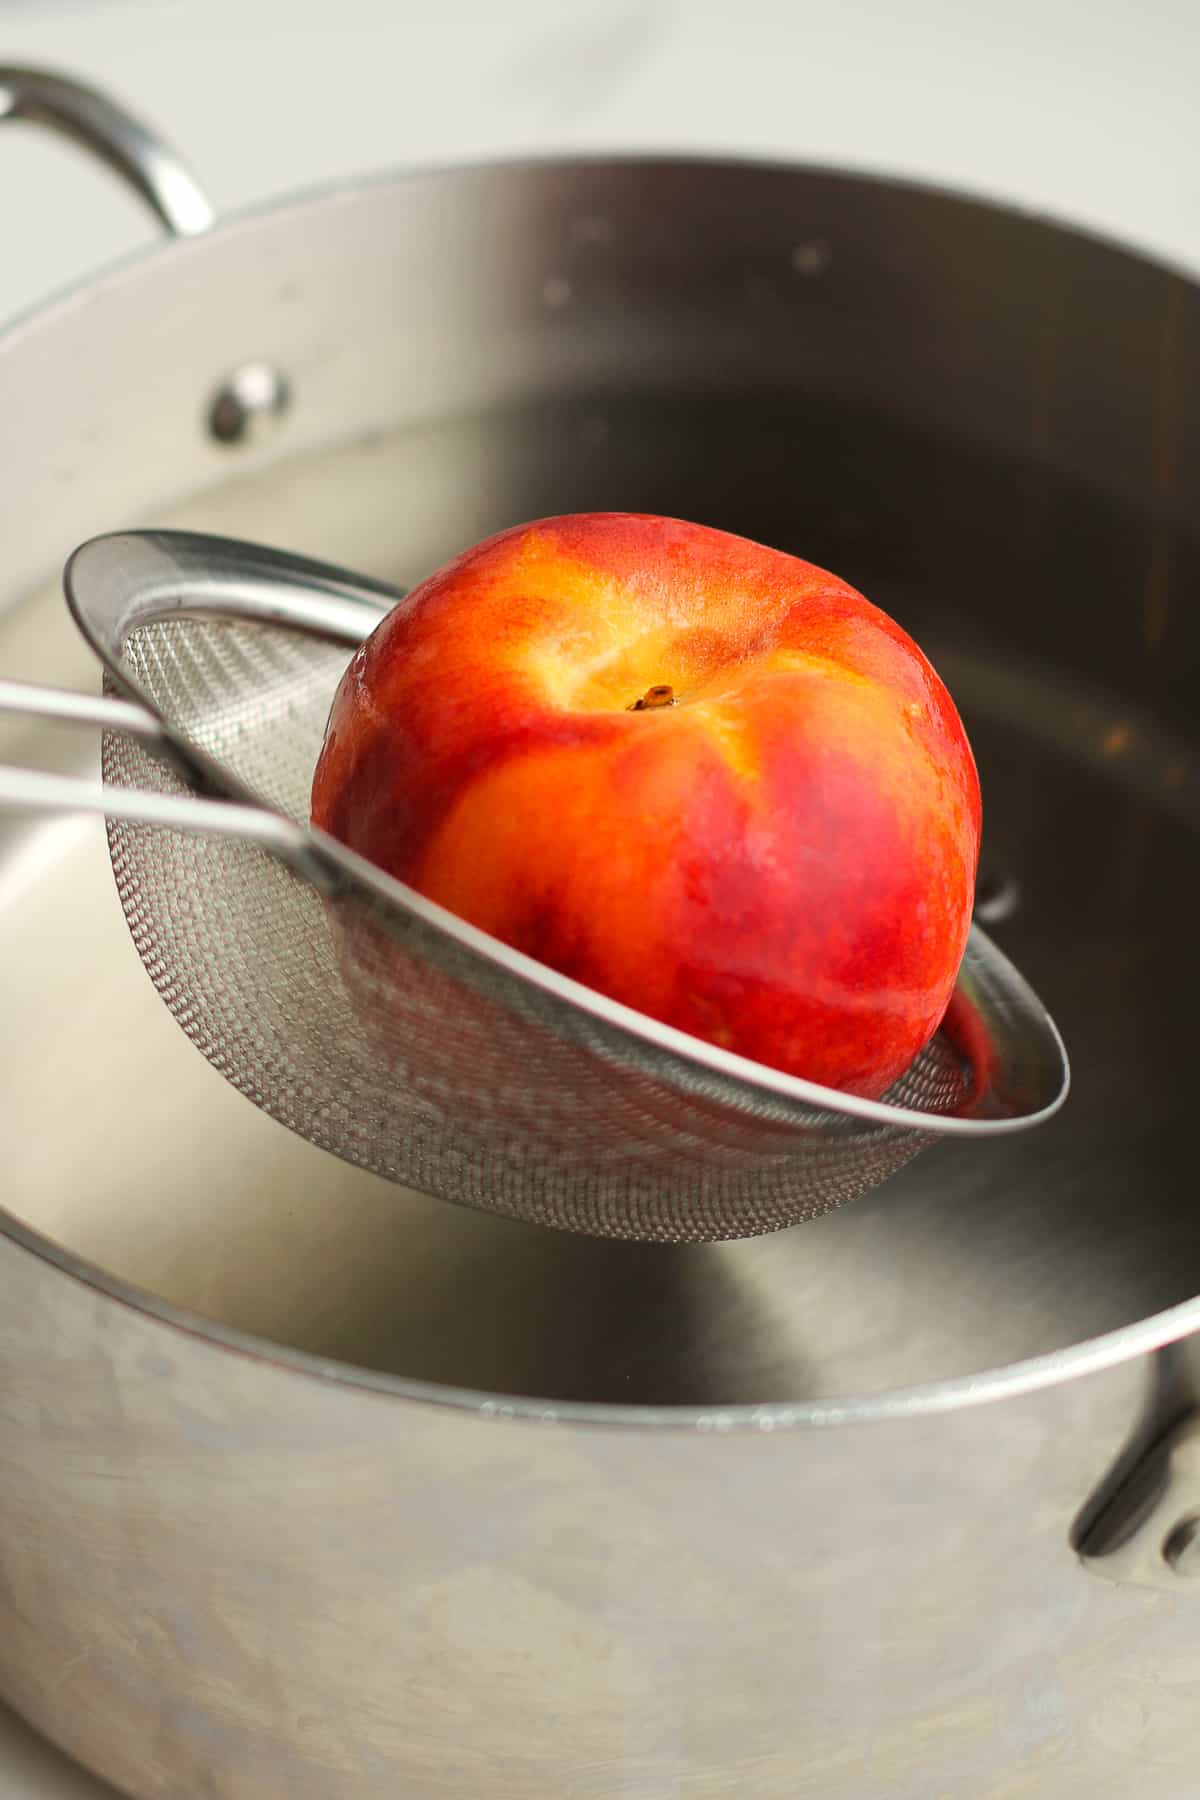 A pan of boiling water with a strainer pulling out a peach.